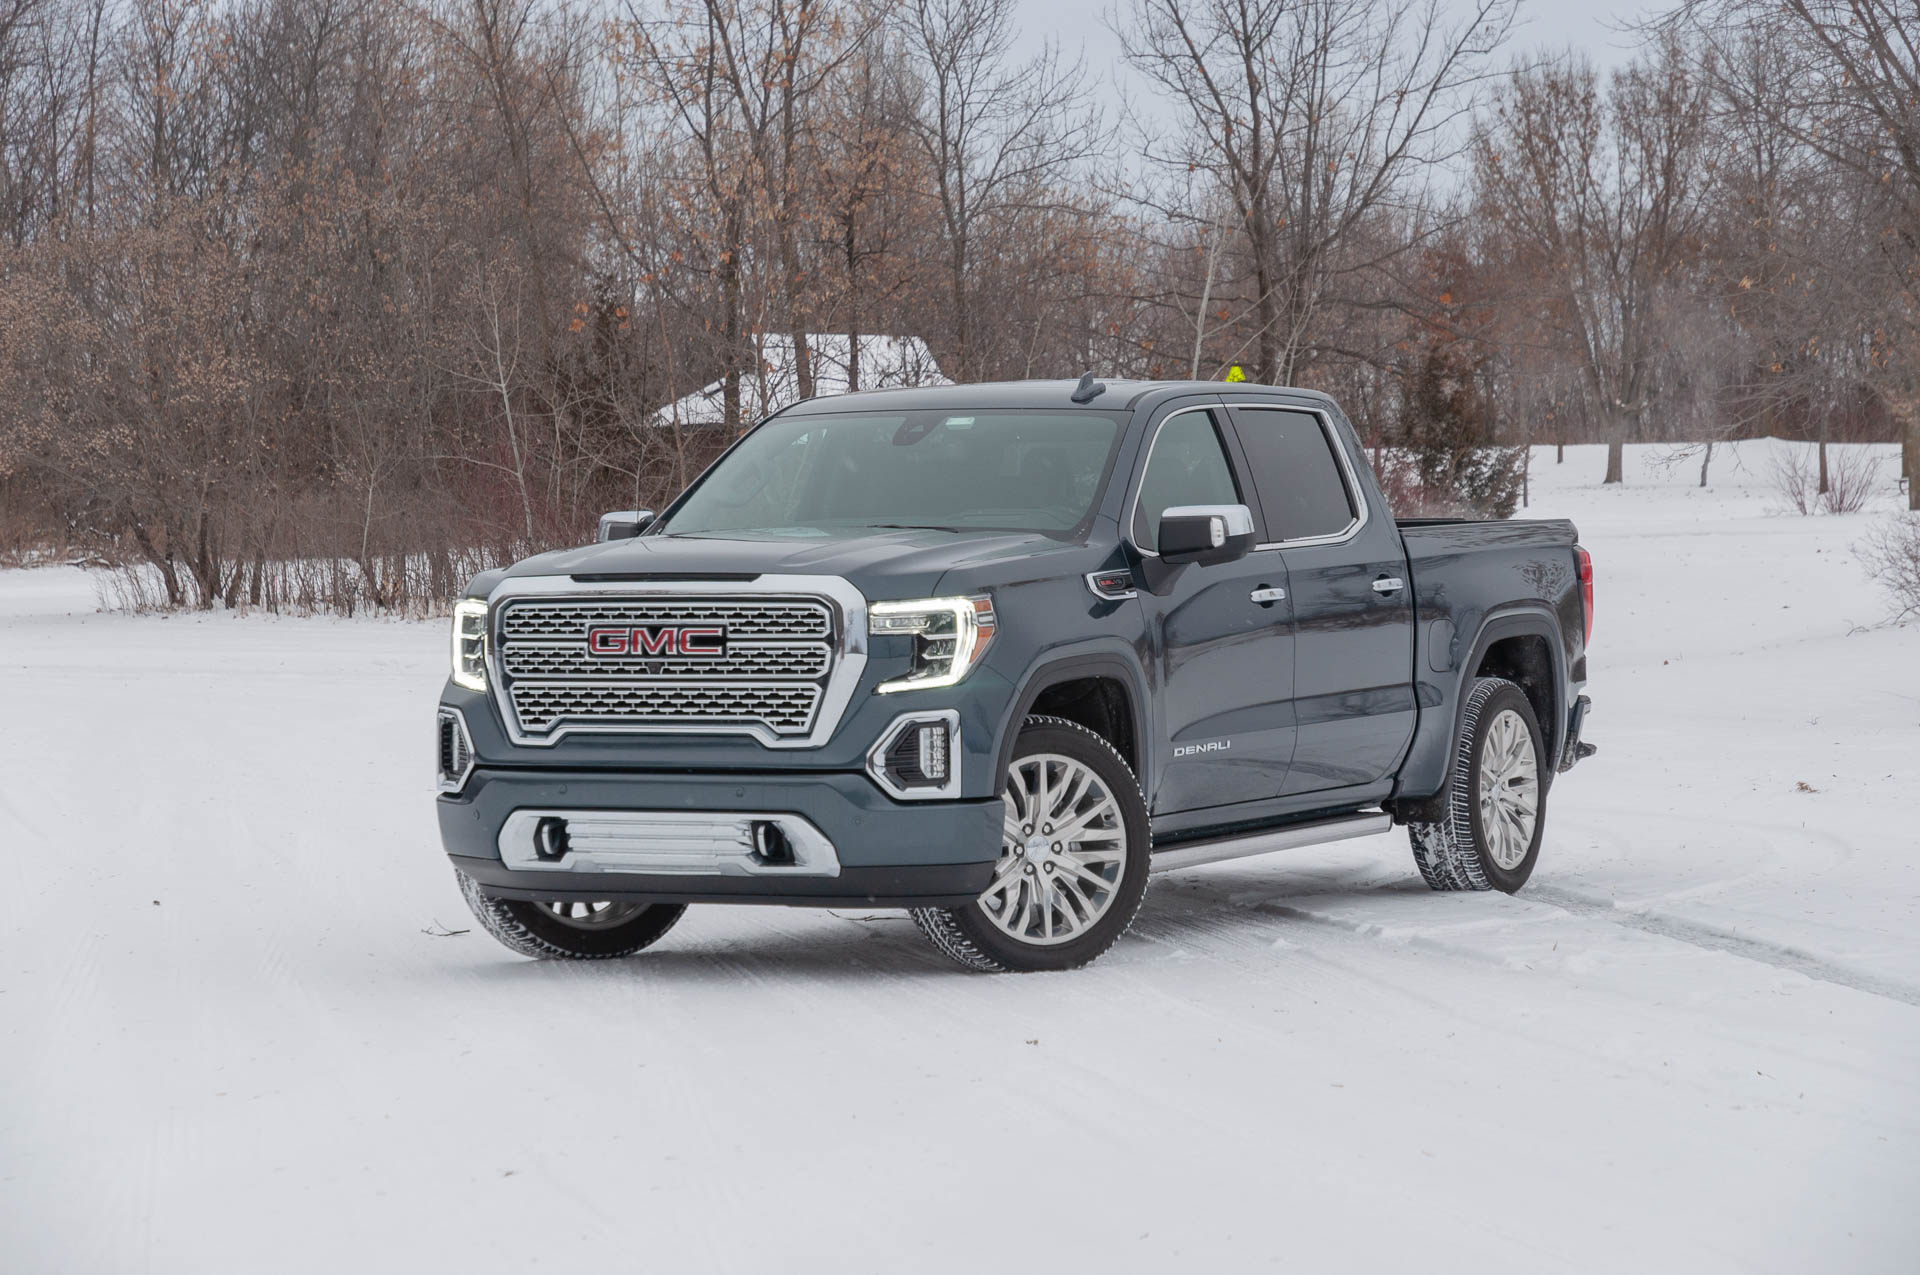 2019 Gmc Sierra 1500 Denali Review Update The Tailgate You